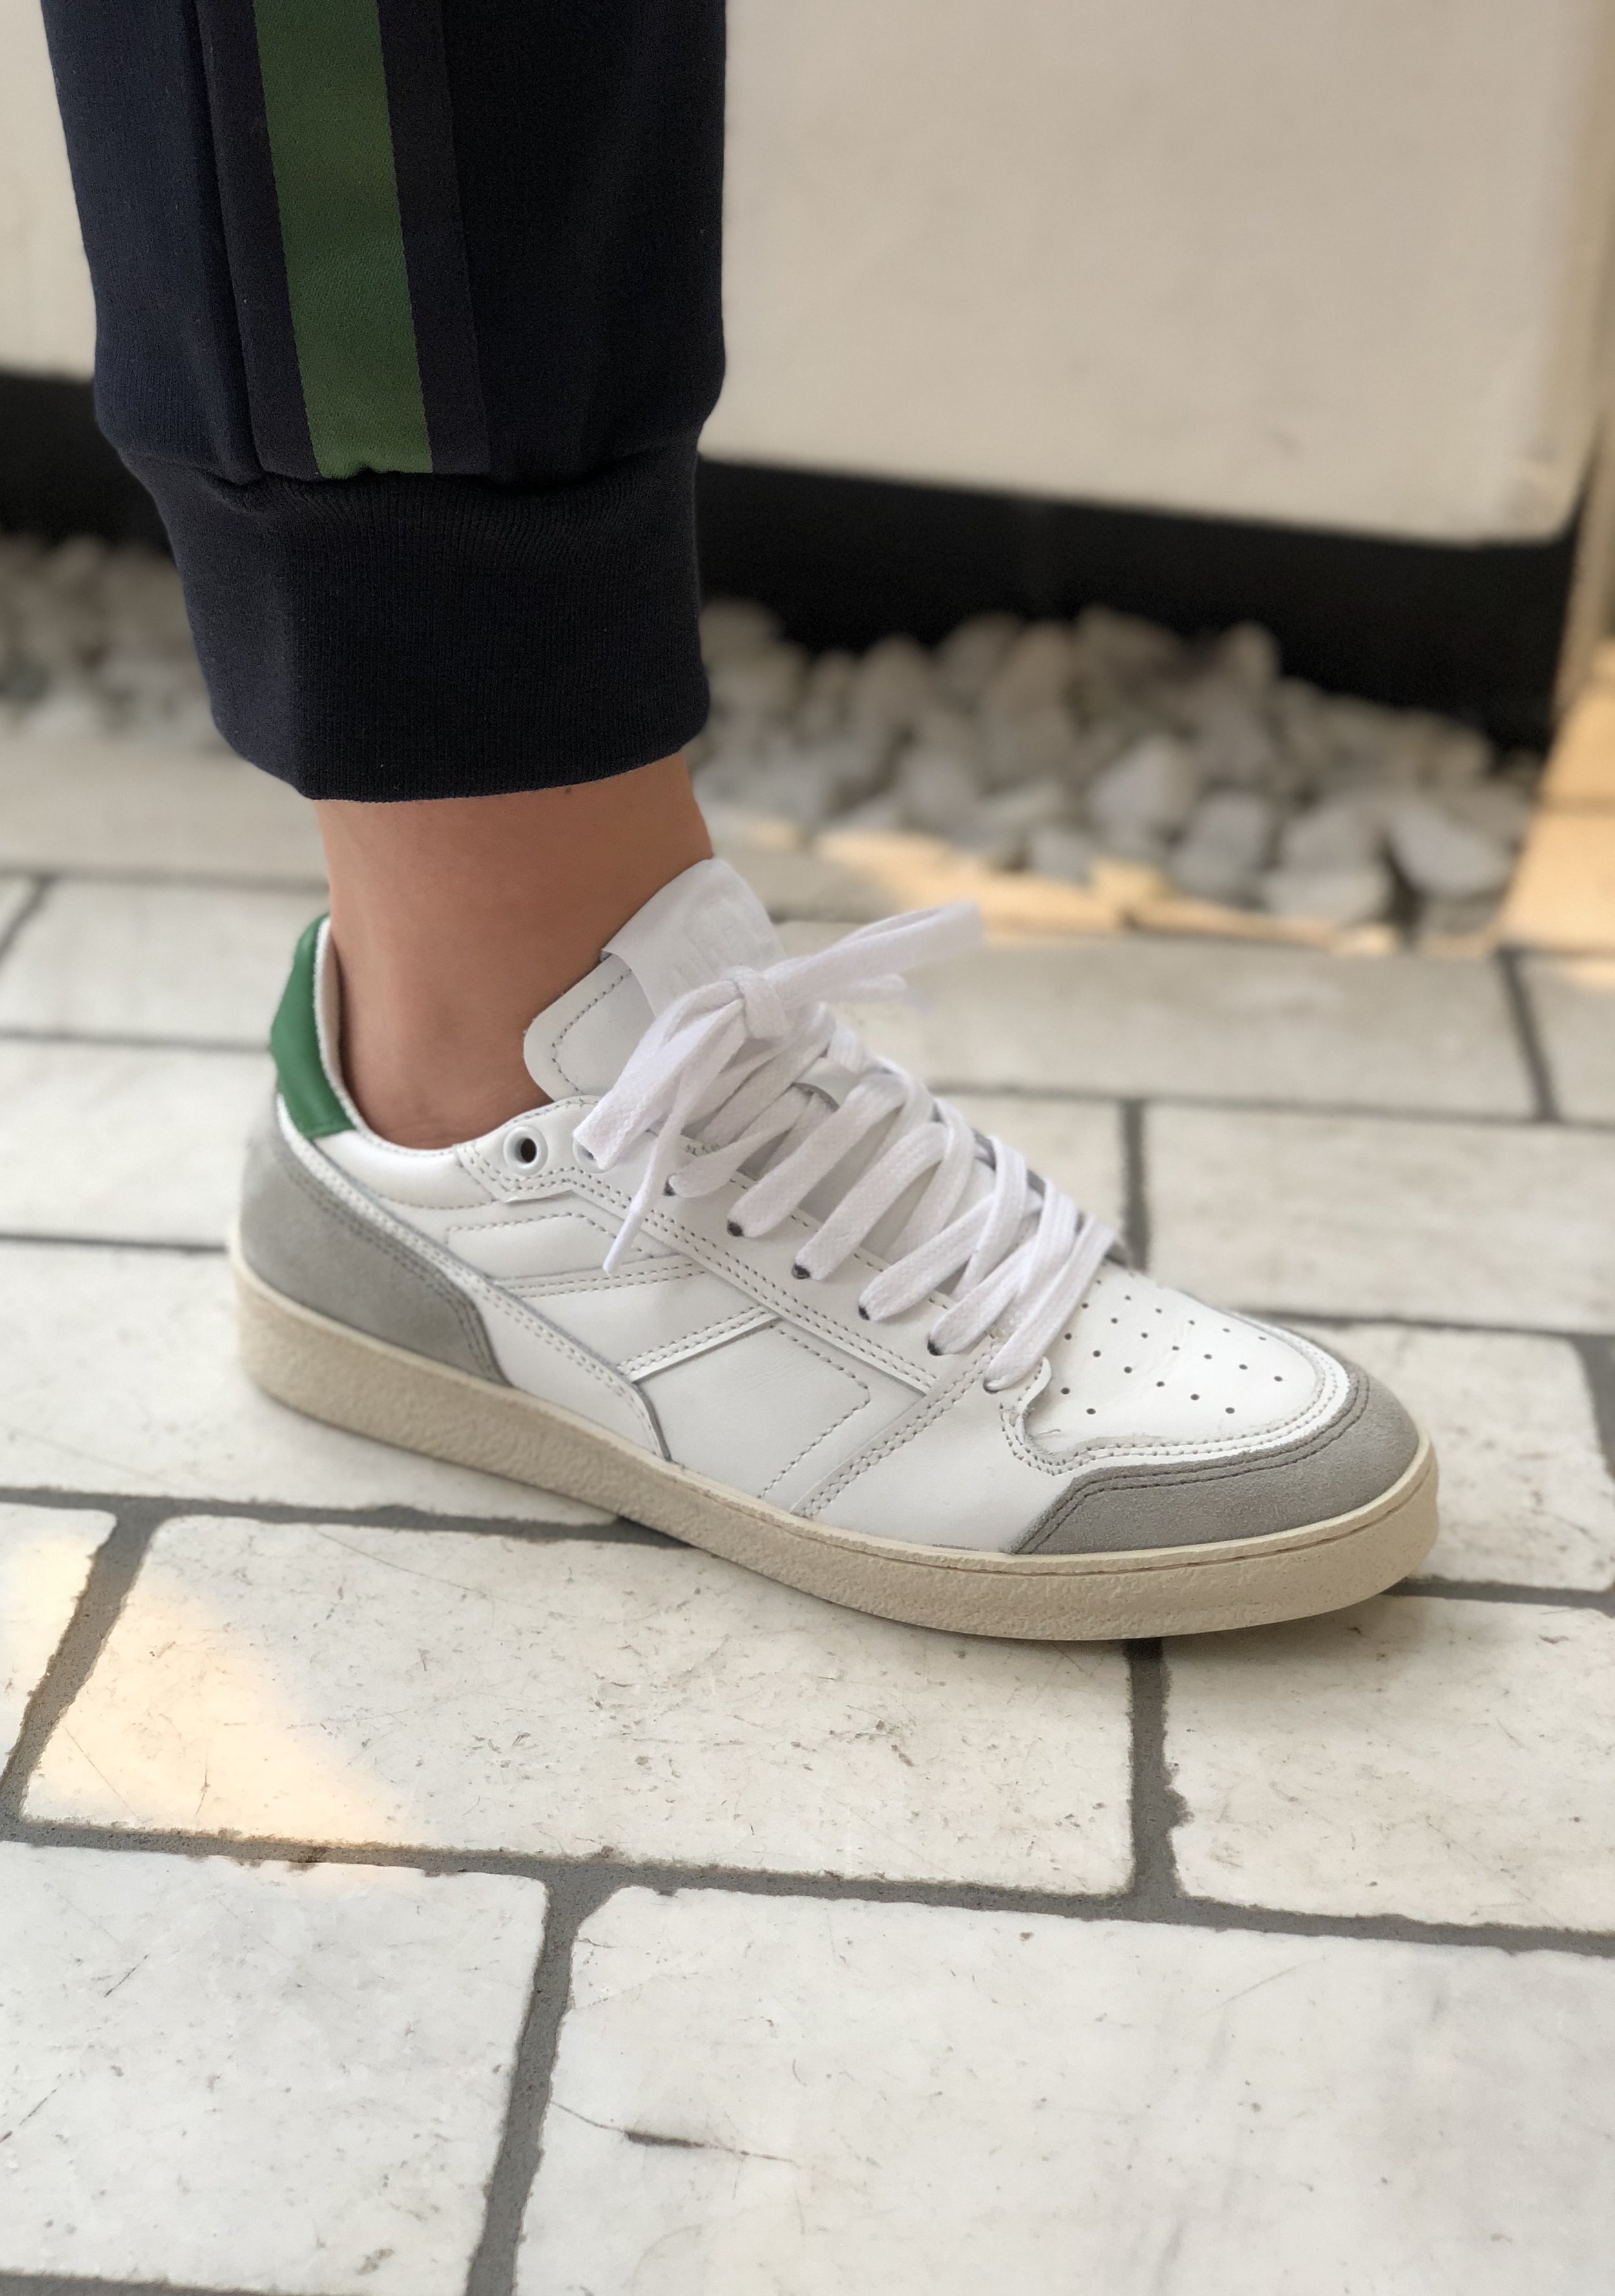 Favorite Item #1 - Claire says these are the perfect white sneaker. Super comfortable, but a little different. Plus we love Ami in general as well as designer Alexandre Mattiussi.